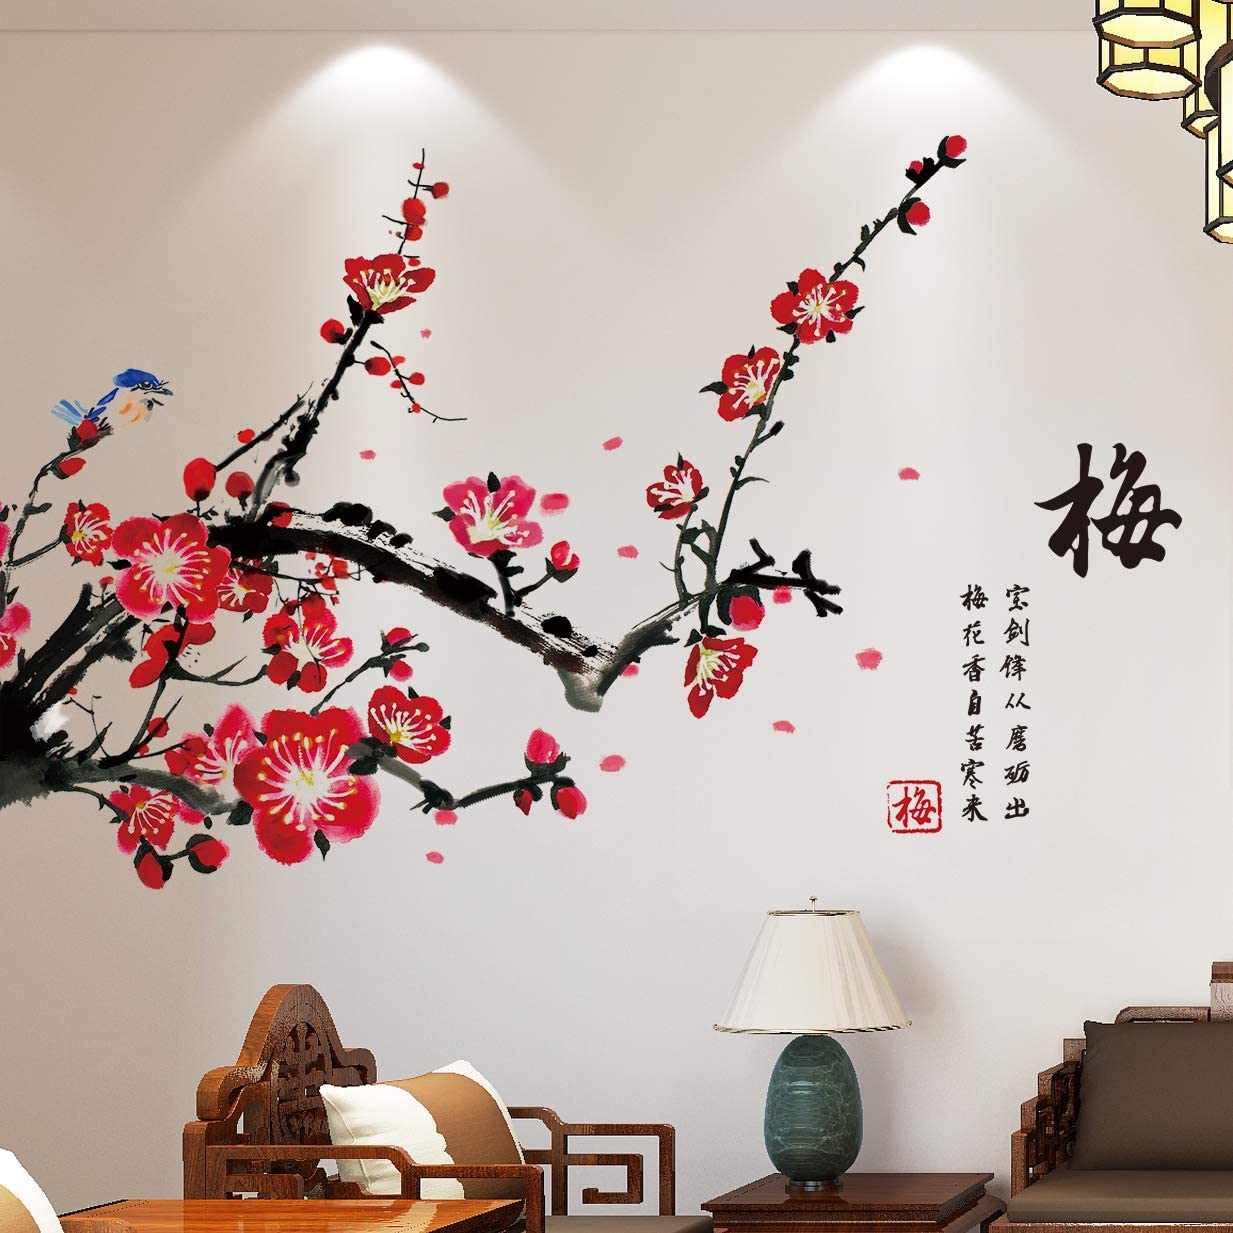 FloralFlowerUScolor092ET Vinyl Decal Wall Fabric Removable and Reusable Floral Flower Wall Decal